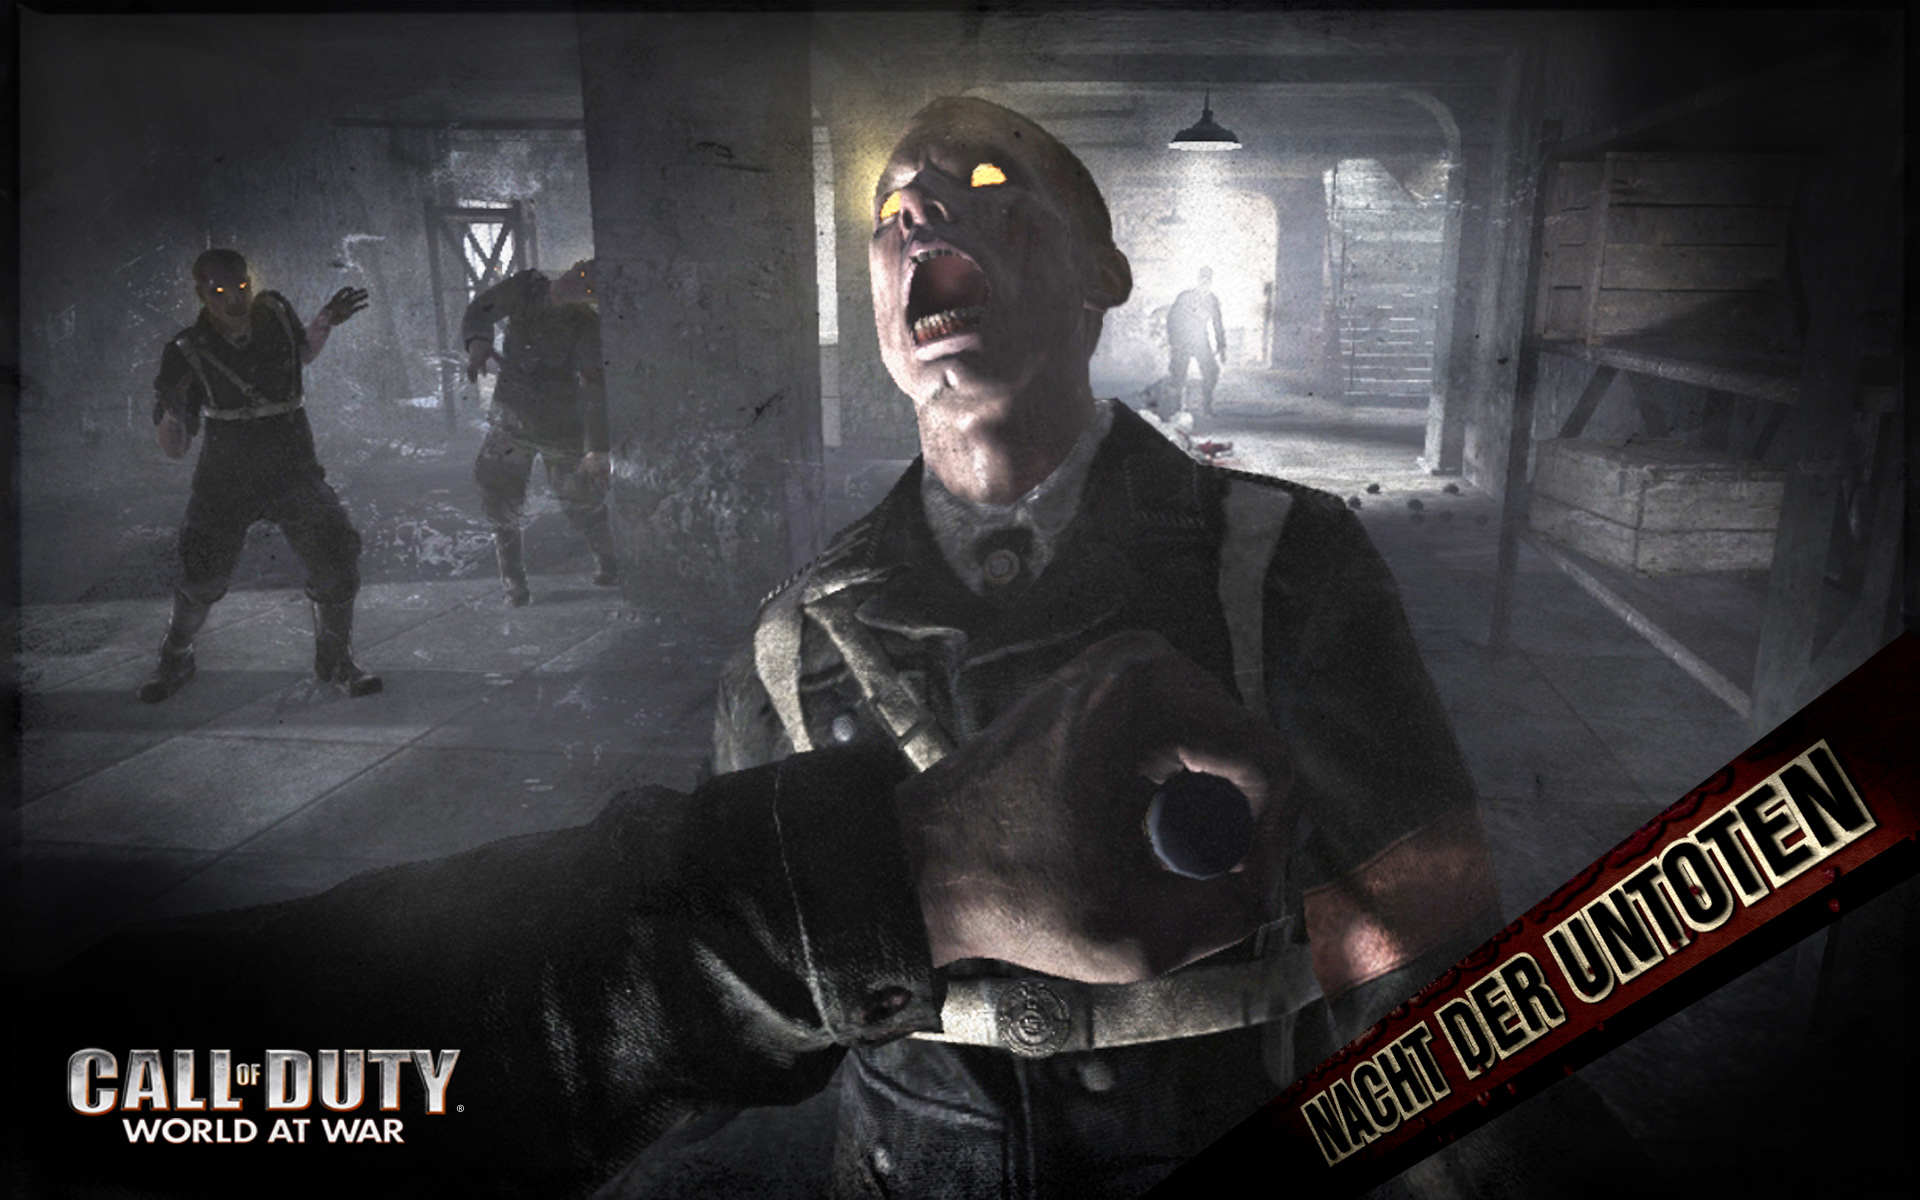 Call of Duty: World at War Wallpaper in 1920x1200